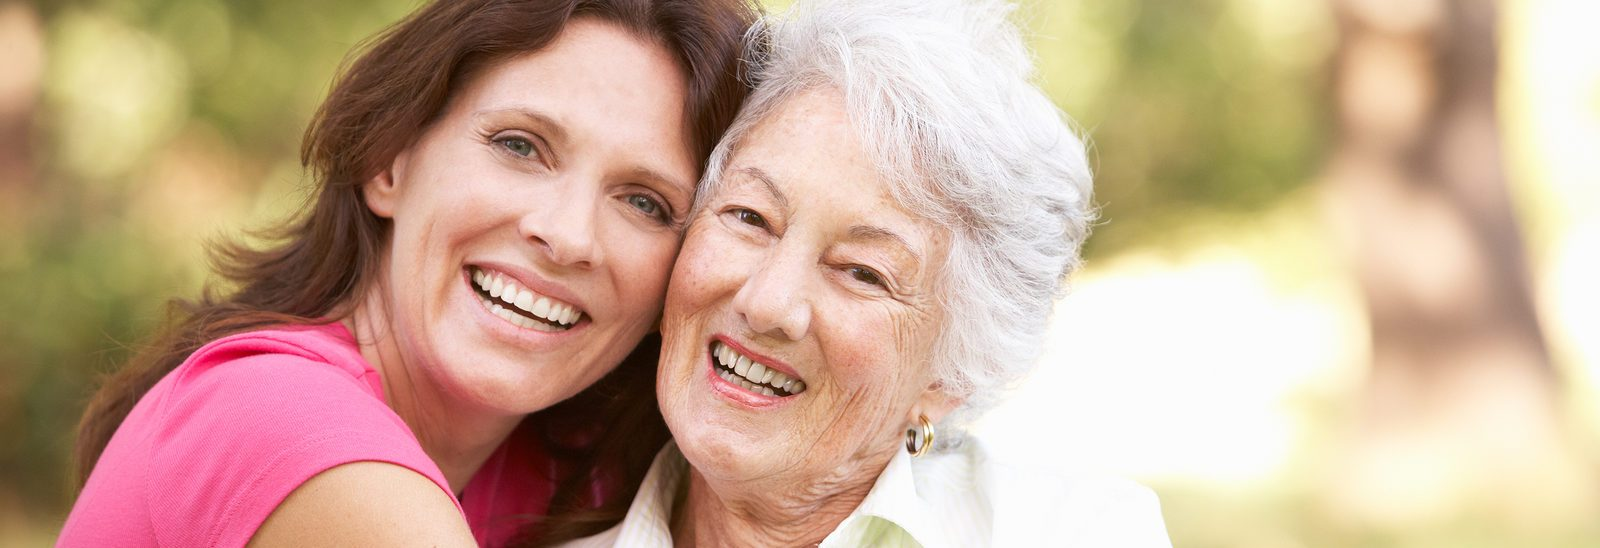 Menopause can cause hypertension